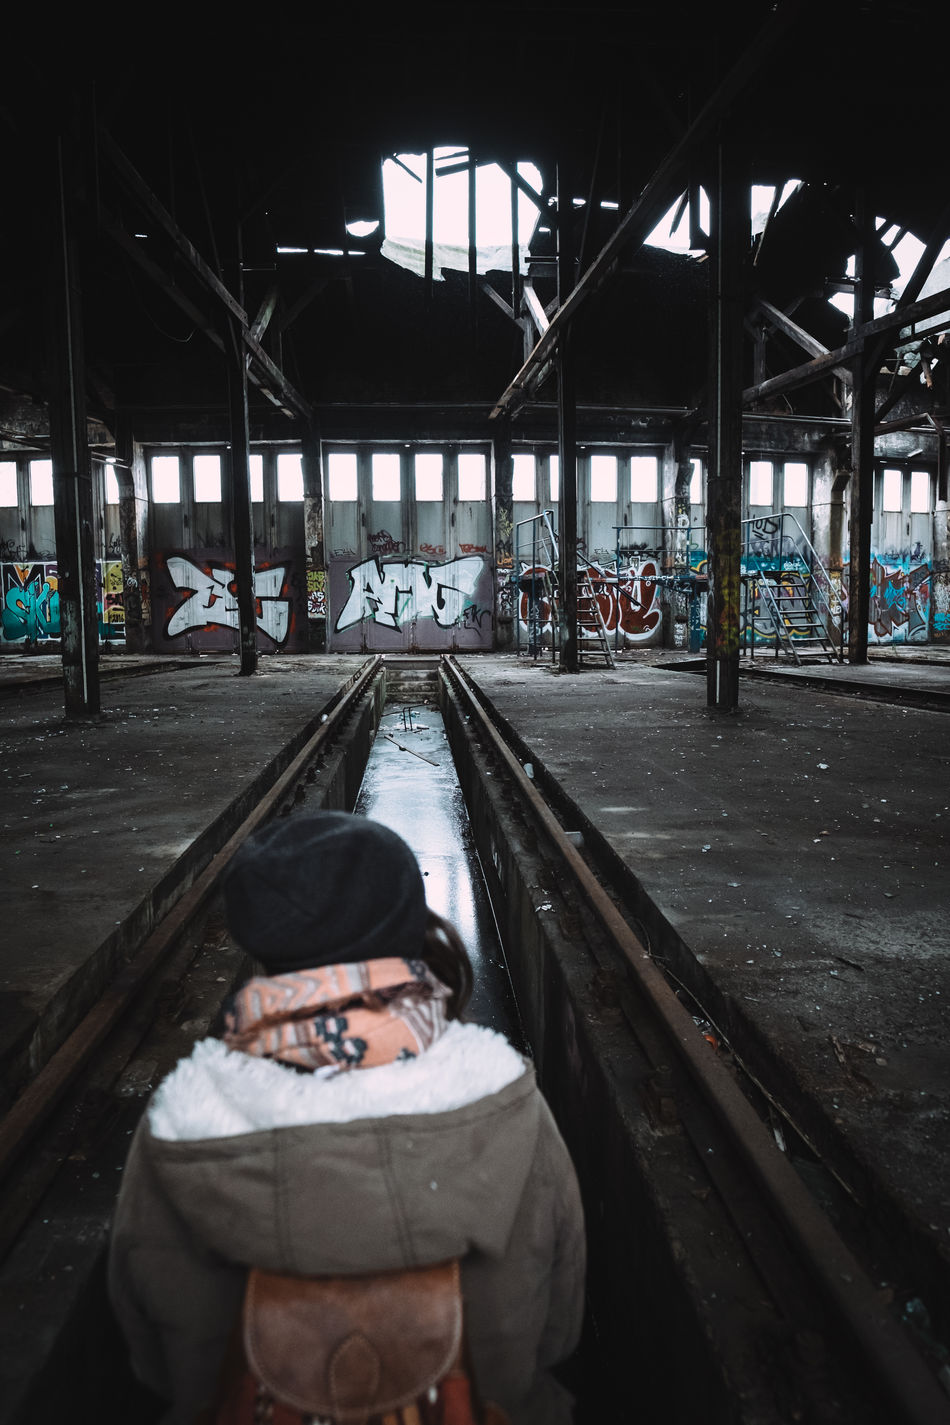 At the old train yard Abandoned Abandoned & Derelict Abandoned Buildings Abandoned Places Adventure Berlin Berlin Photography Berlinstagram Explorer Girl Ice One Person Sitting Train Yard Urban Exploration Urban Explorer Urban Exploring Woman